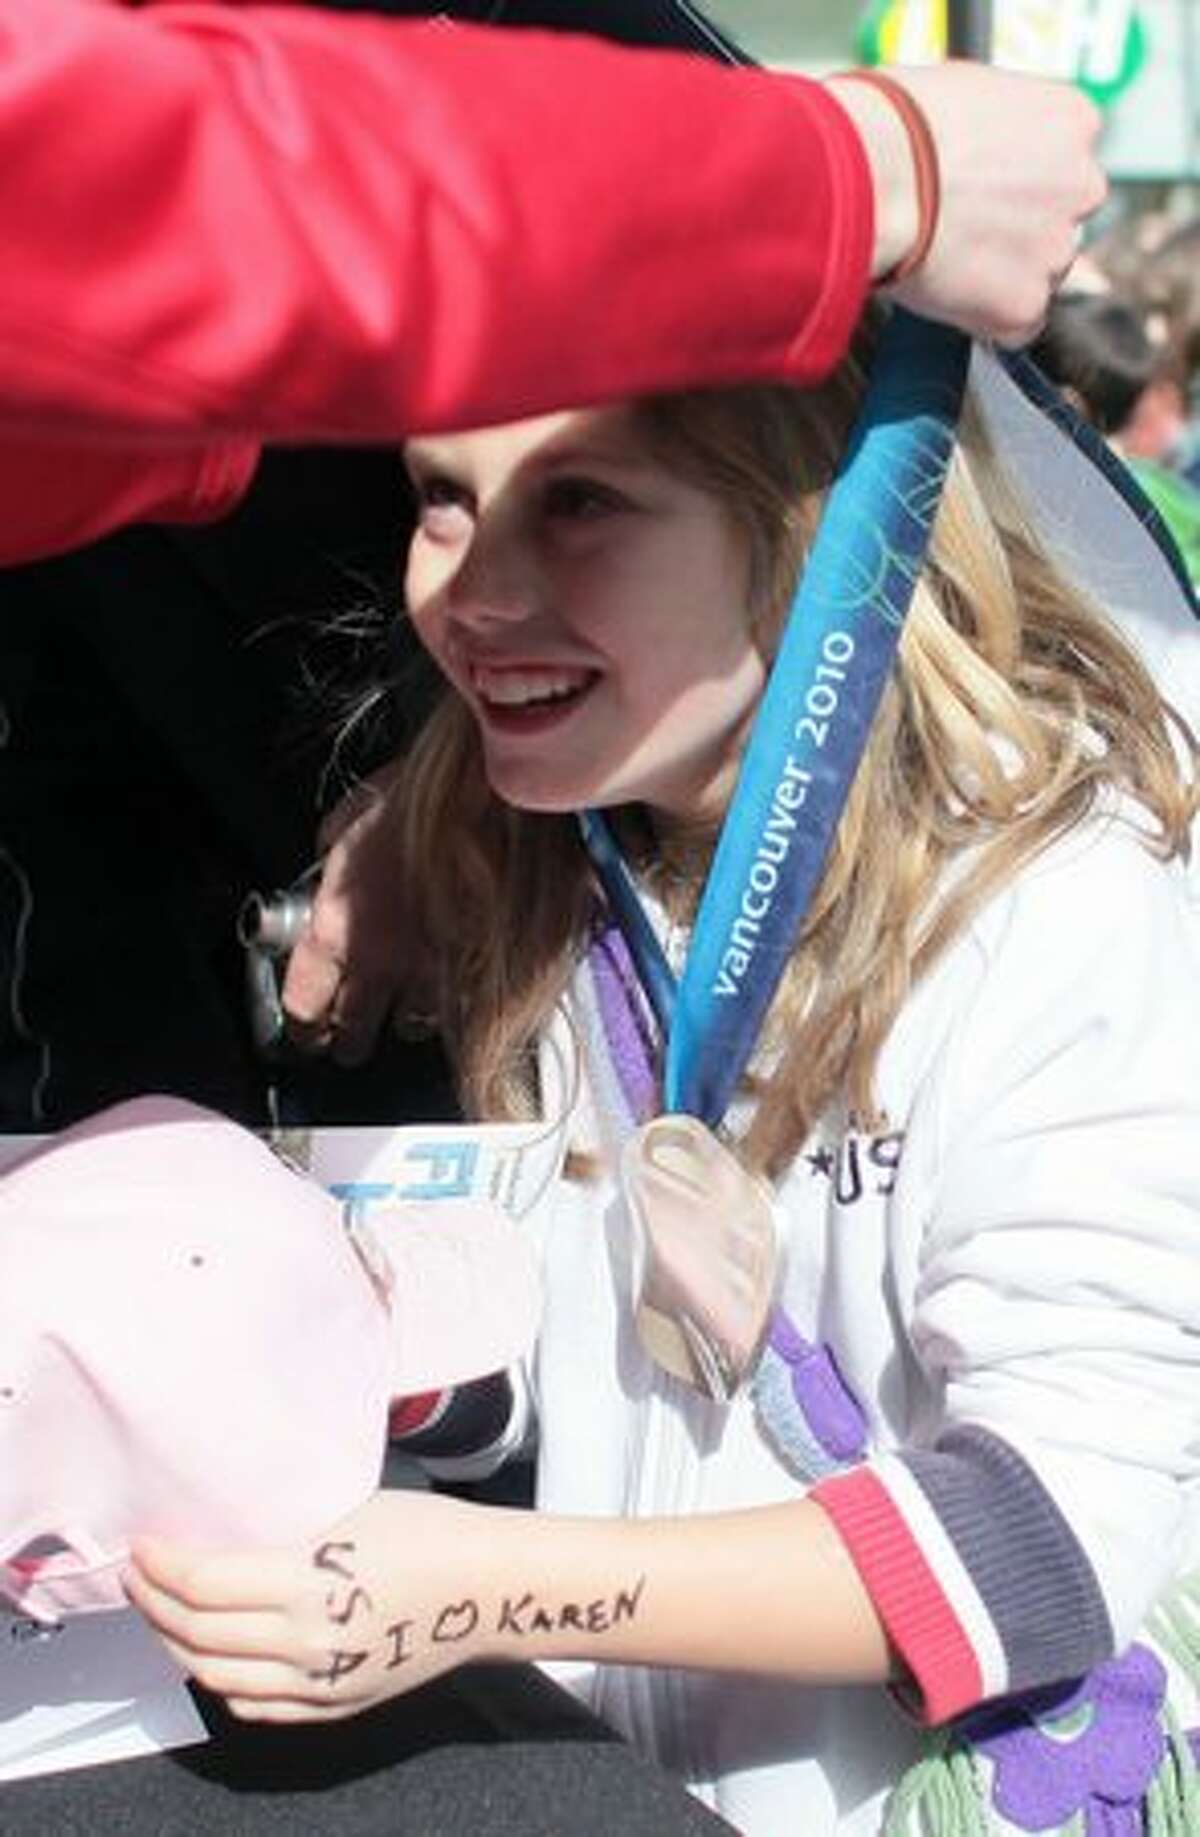 Emily Kline, 9, a hockey player from Tacoma gets to try on Karen Thatcher's silver Olympic medal as local Olympians are welcomed home after competing in the Vancouver Olympics.